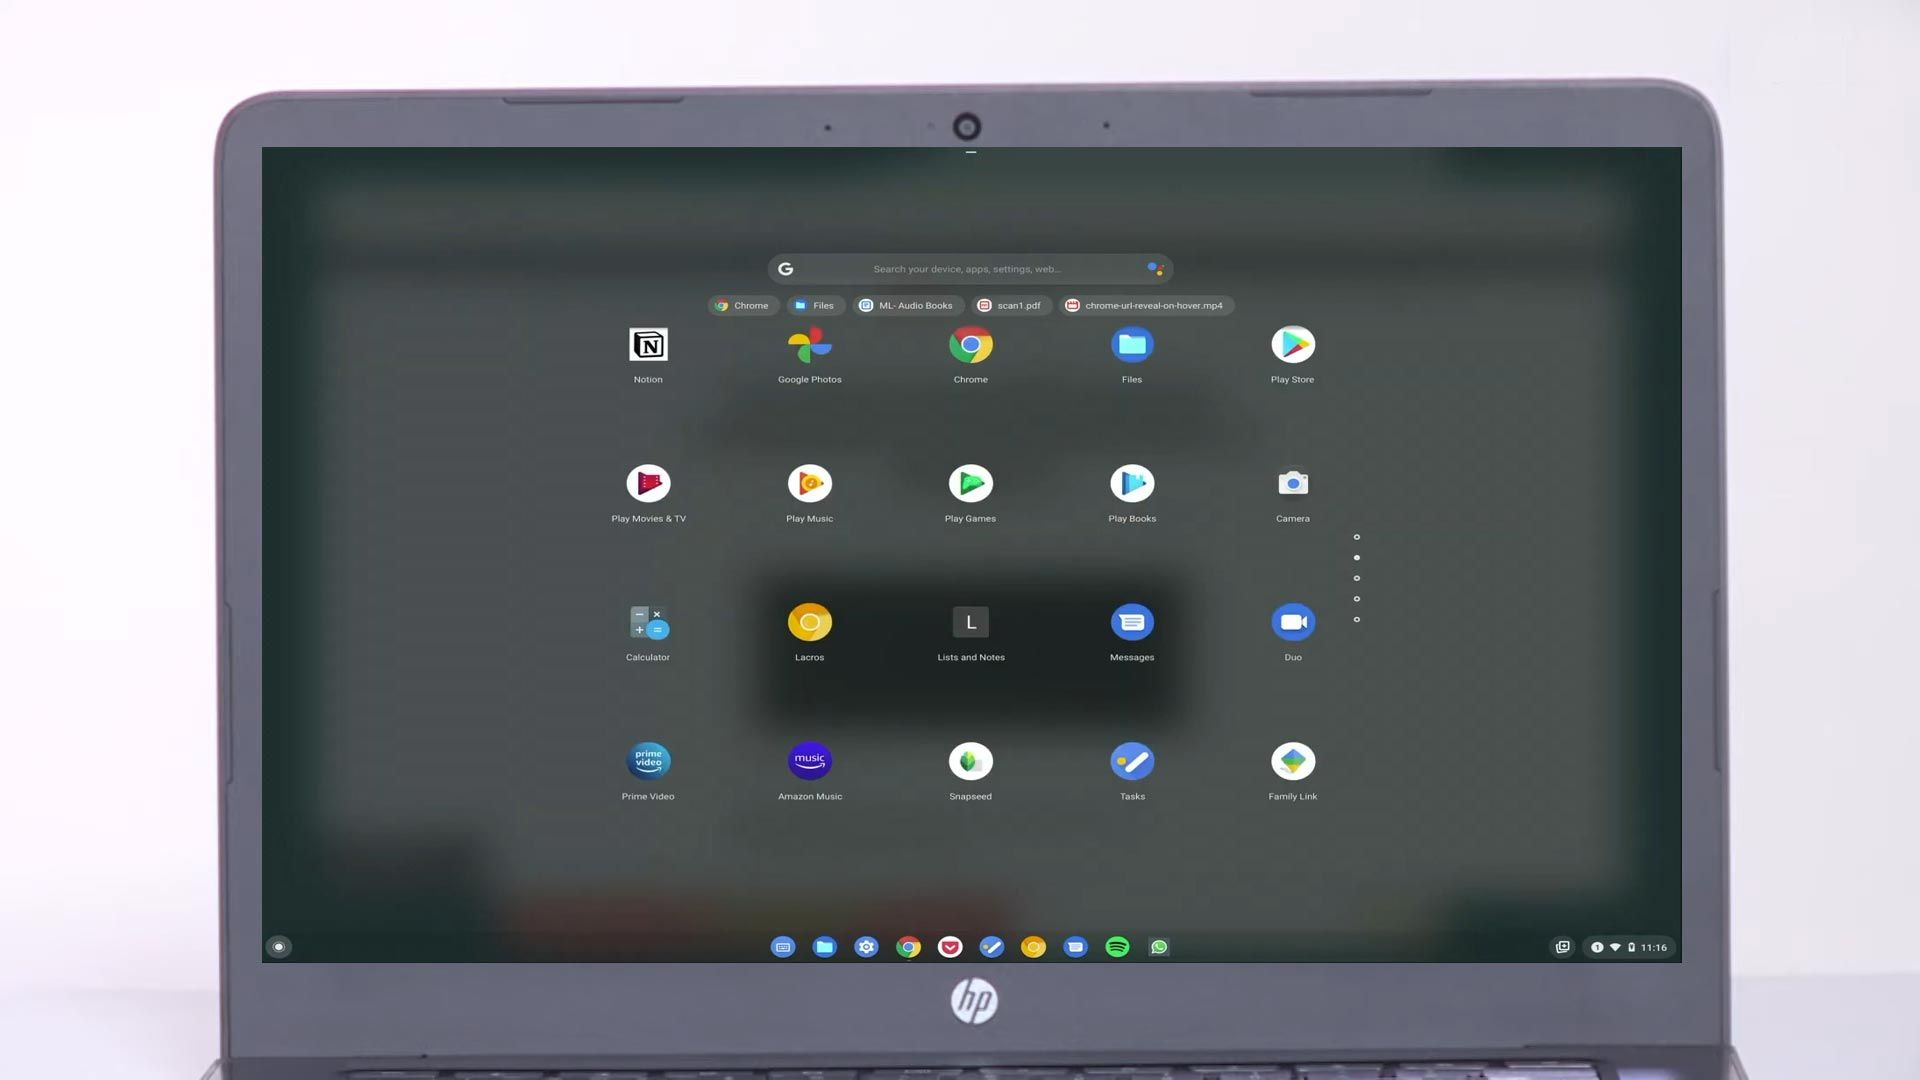 How To Enable Dark Mode In Google Chrome Os Manually Android Infotech Chromebook Google Chrome Chrome